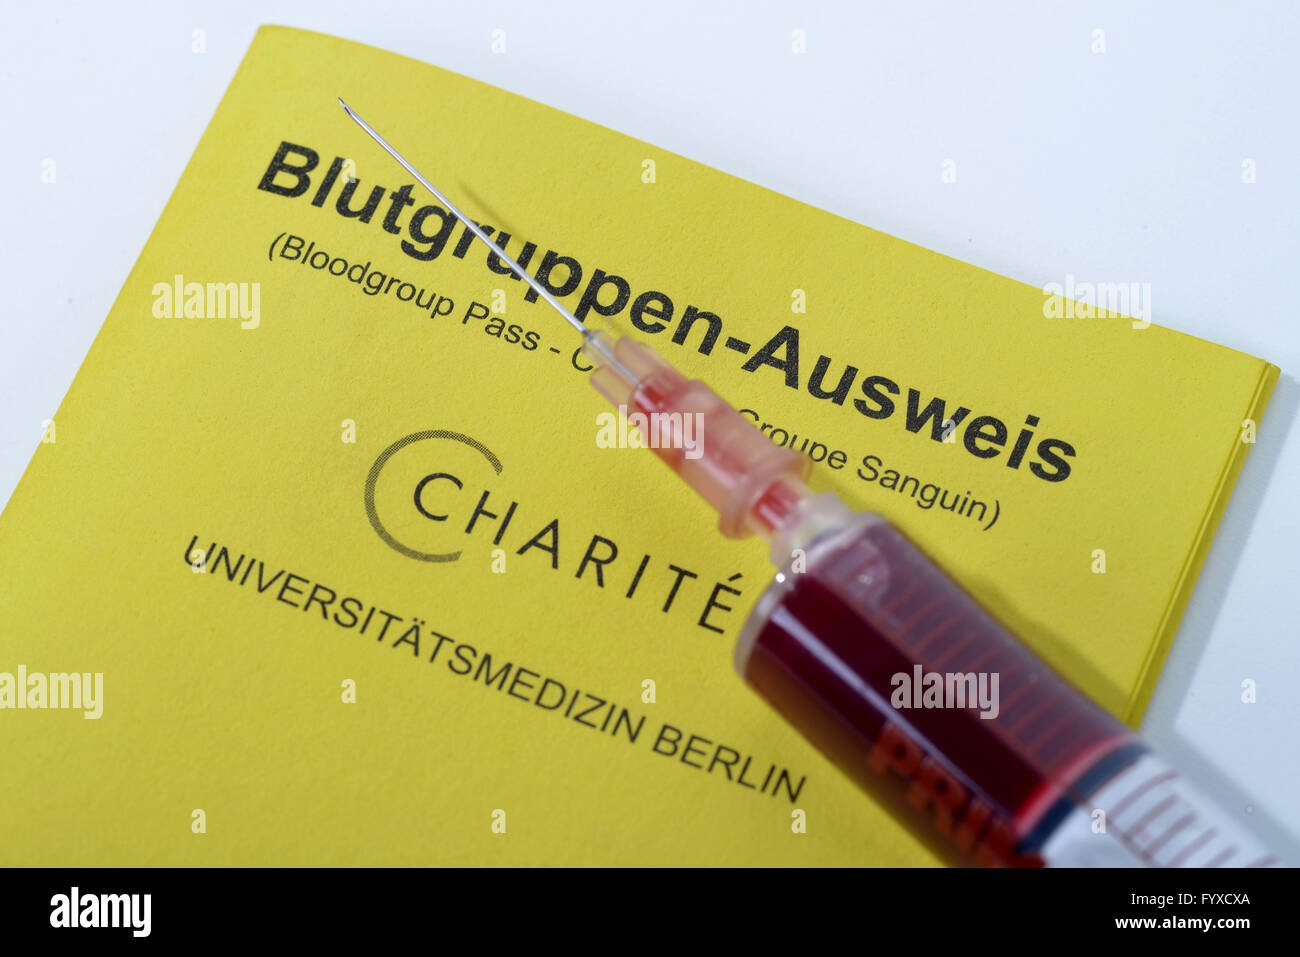 Blood group card stock photo royalty free image 102922829 alamy blood group badge blood type card taking blood sample blood test stock xflitez Images